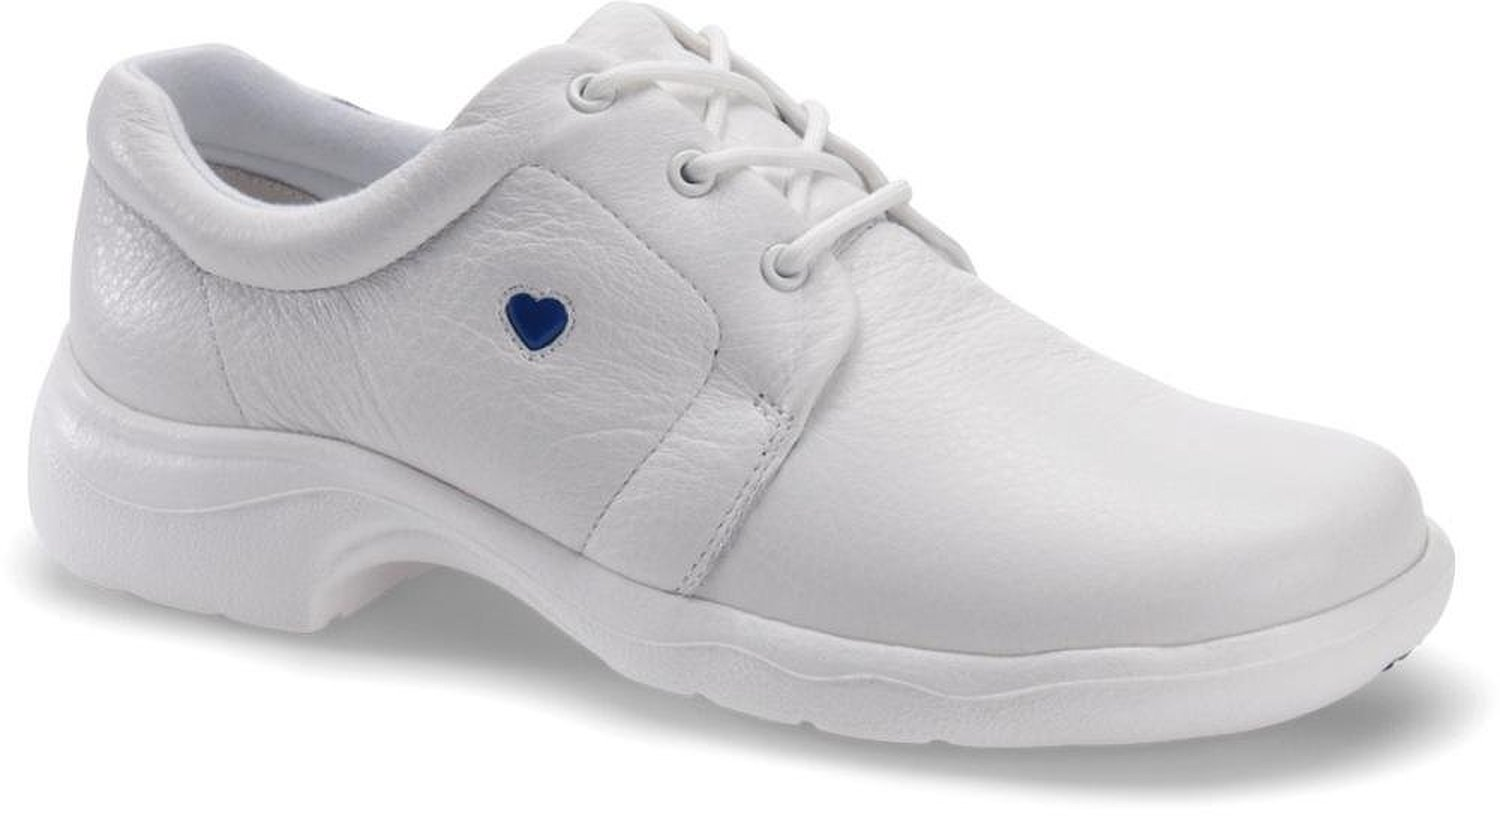 for on spends the their best shoe trainer shoes style womens anyone training and nurses feet hours flex who else comforter nurse comfortable